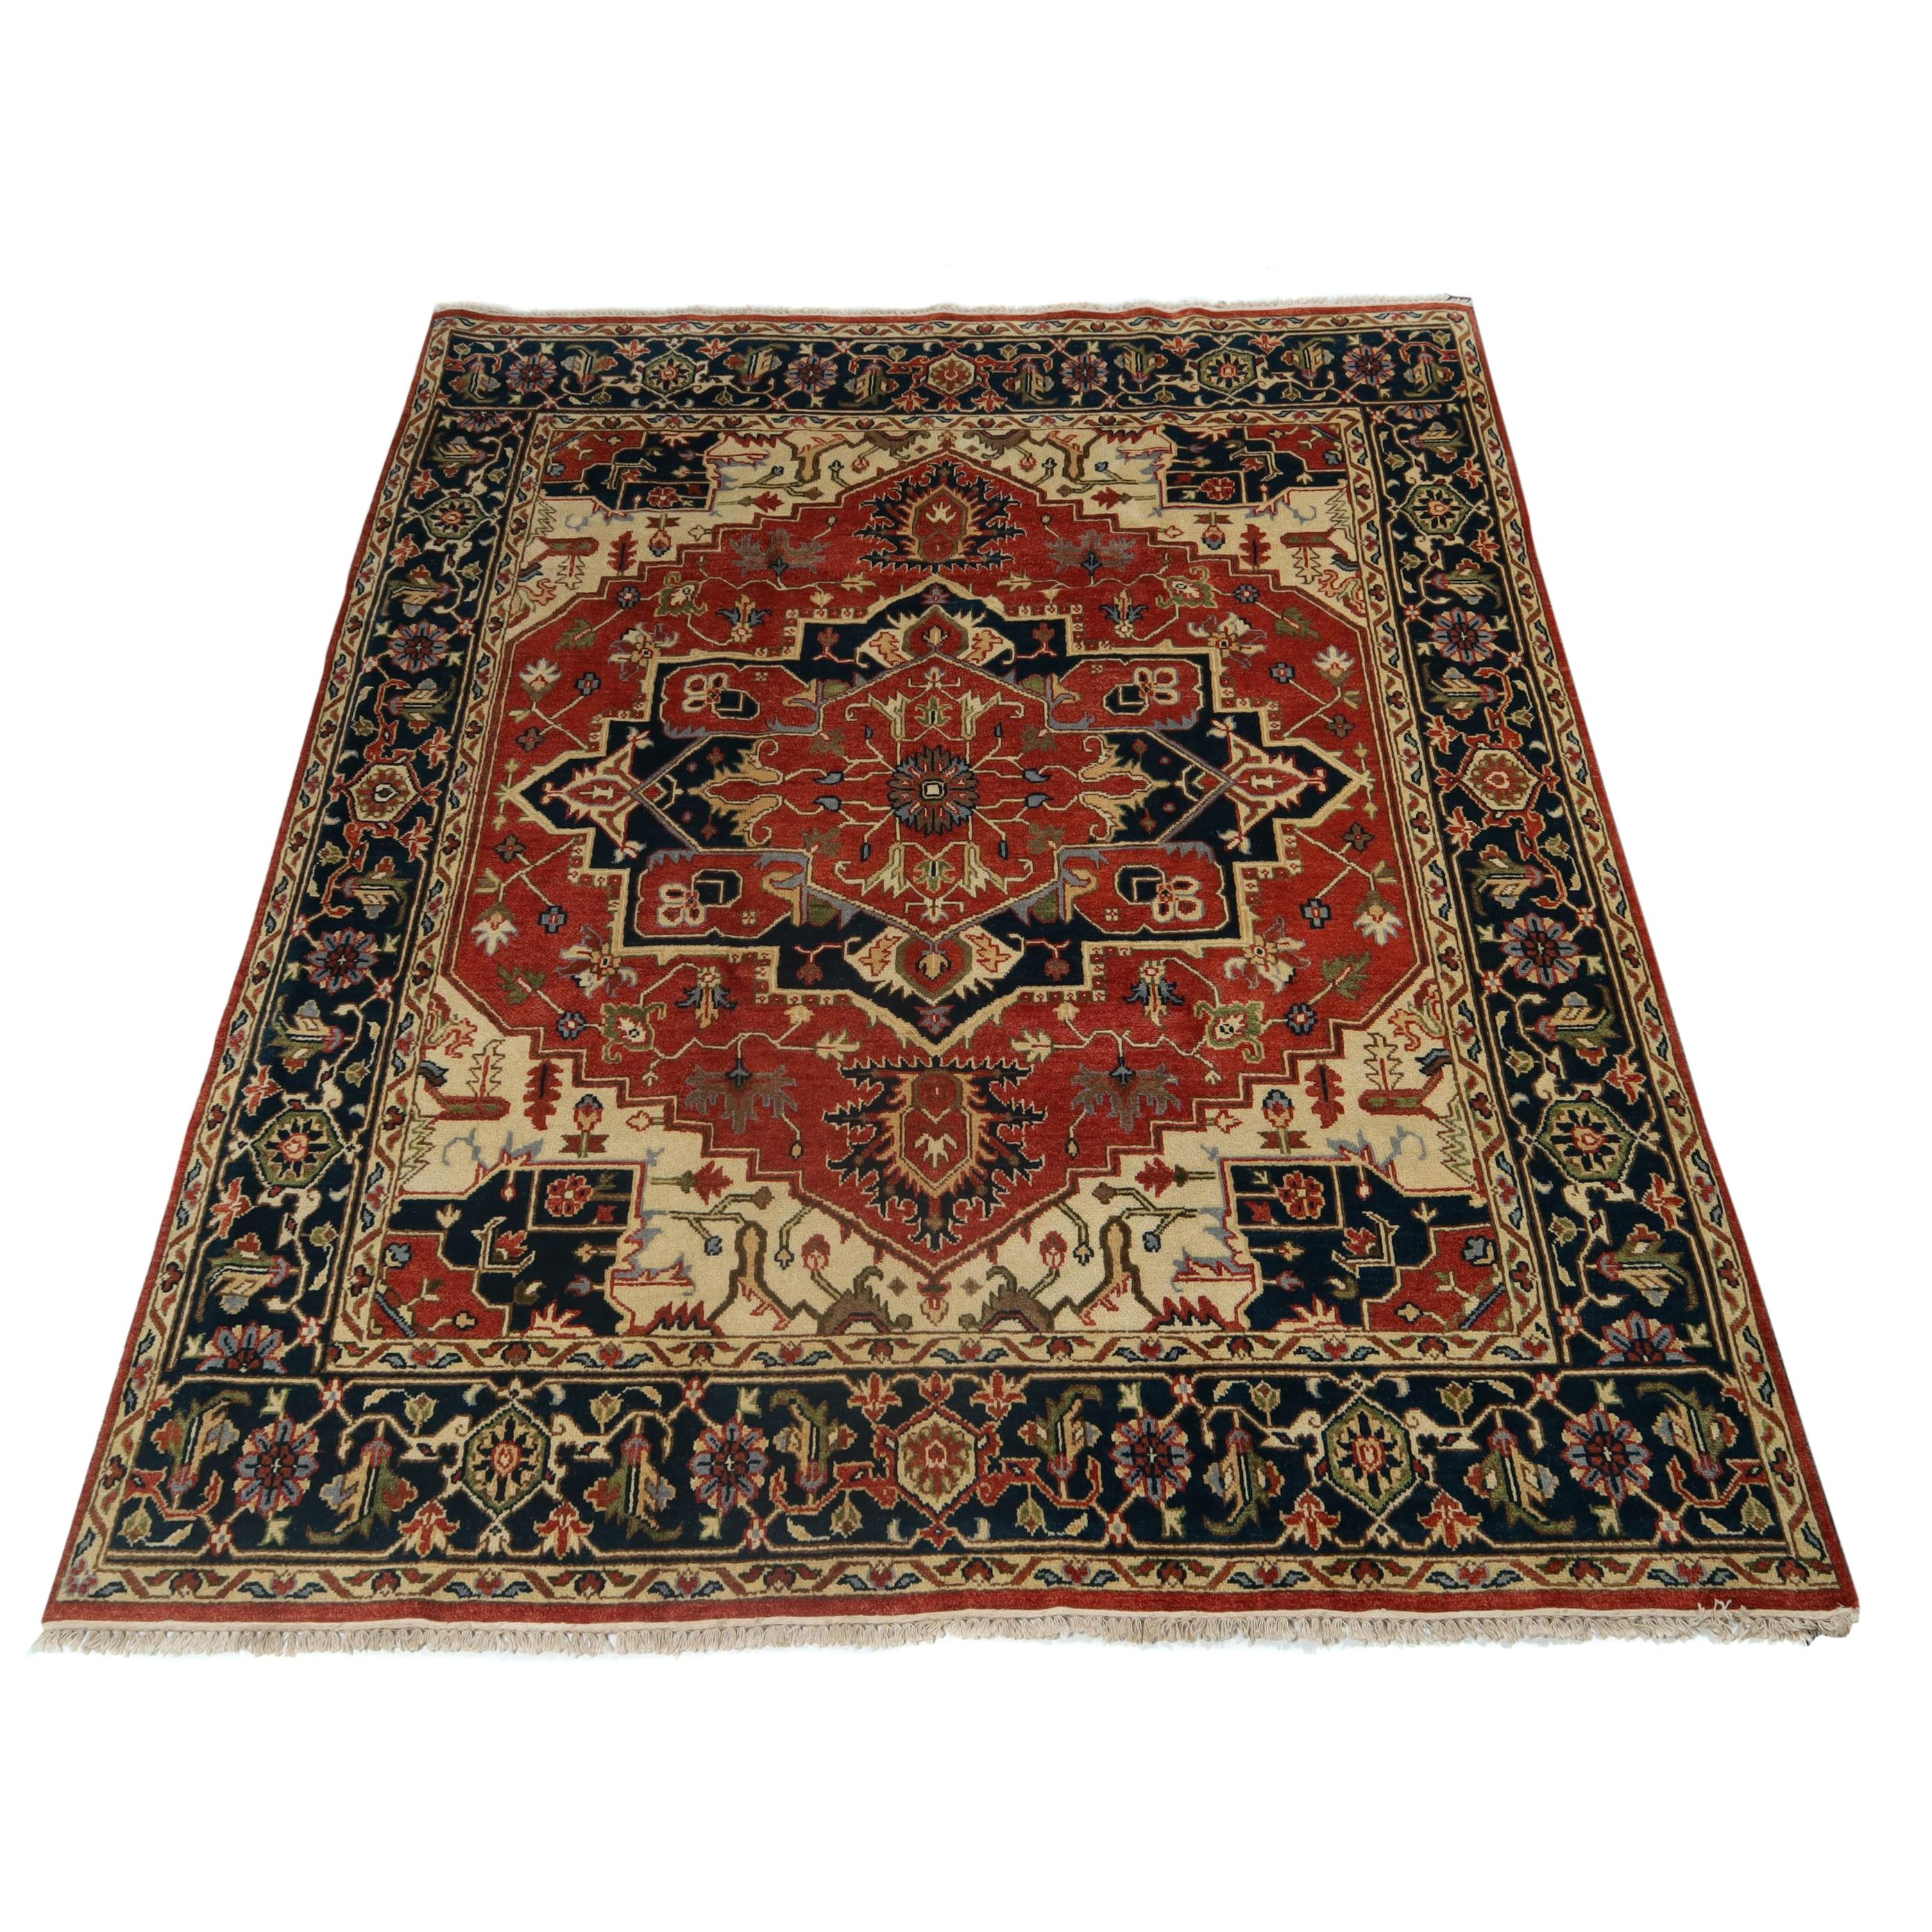 7.9' x 10' Hand-Knotted Indo-Persian Heriz Serapi Wool Rug